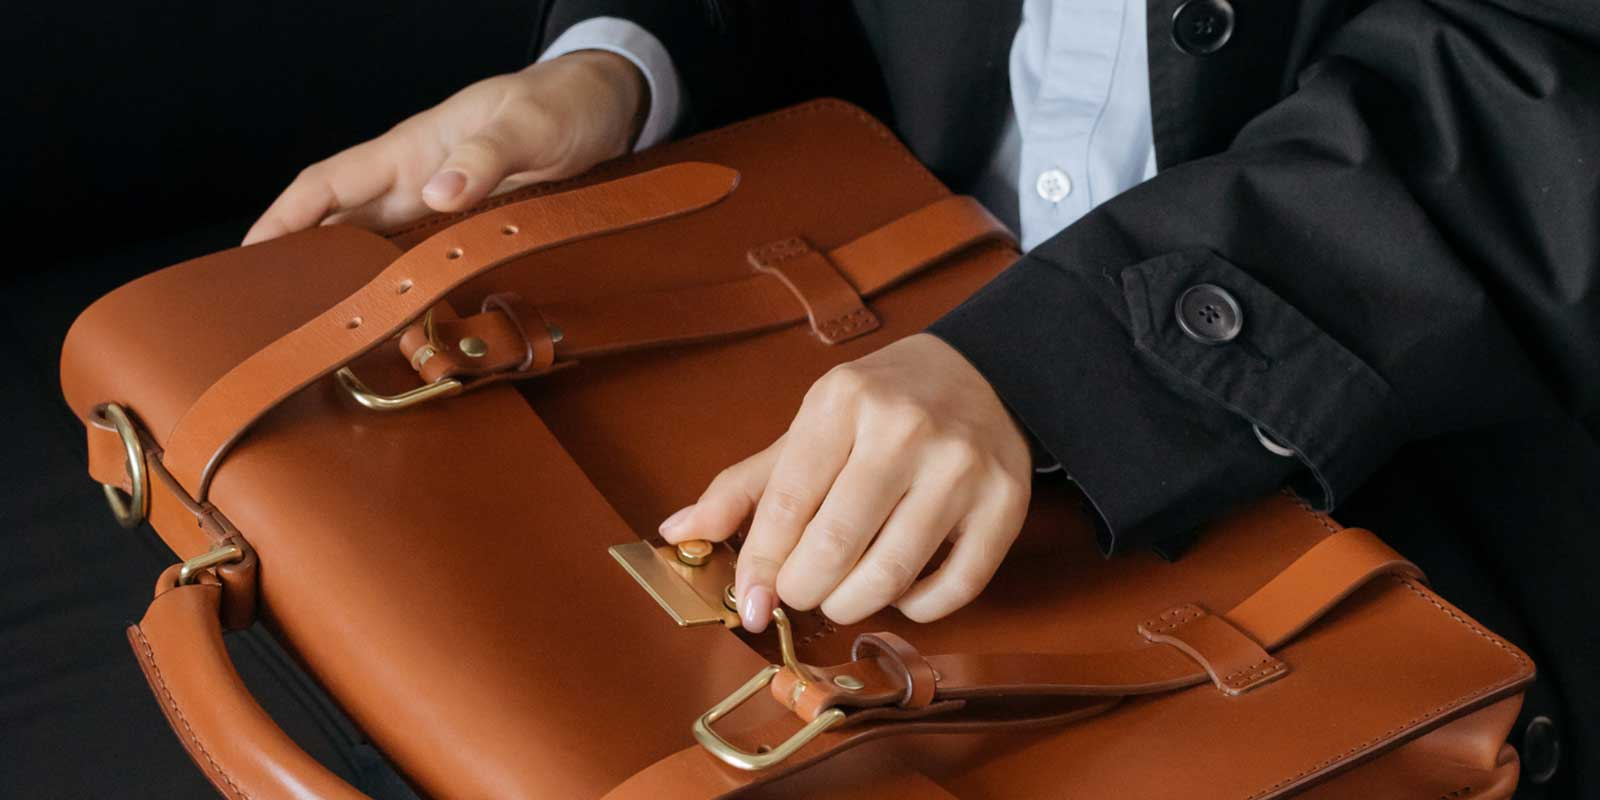 What Is The Difference Between A Satchel And A Shoulder Bag?